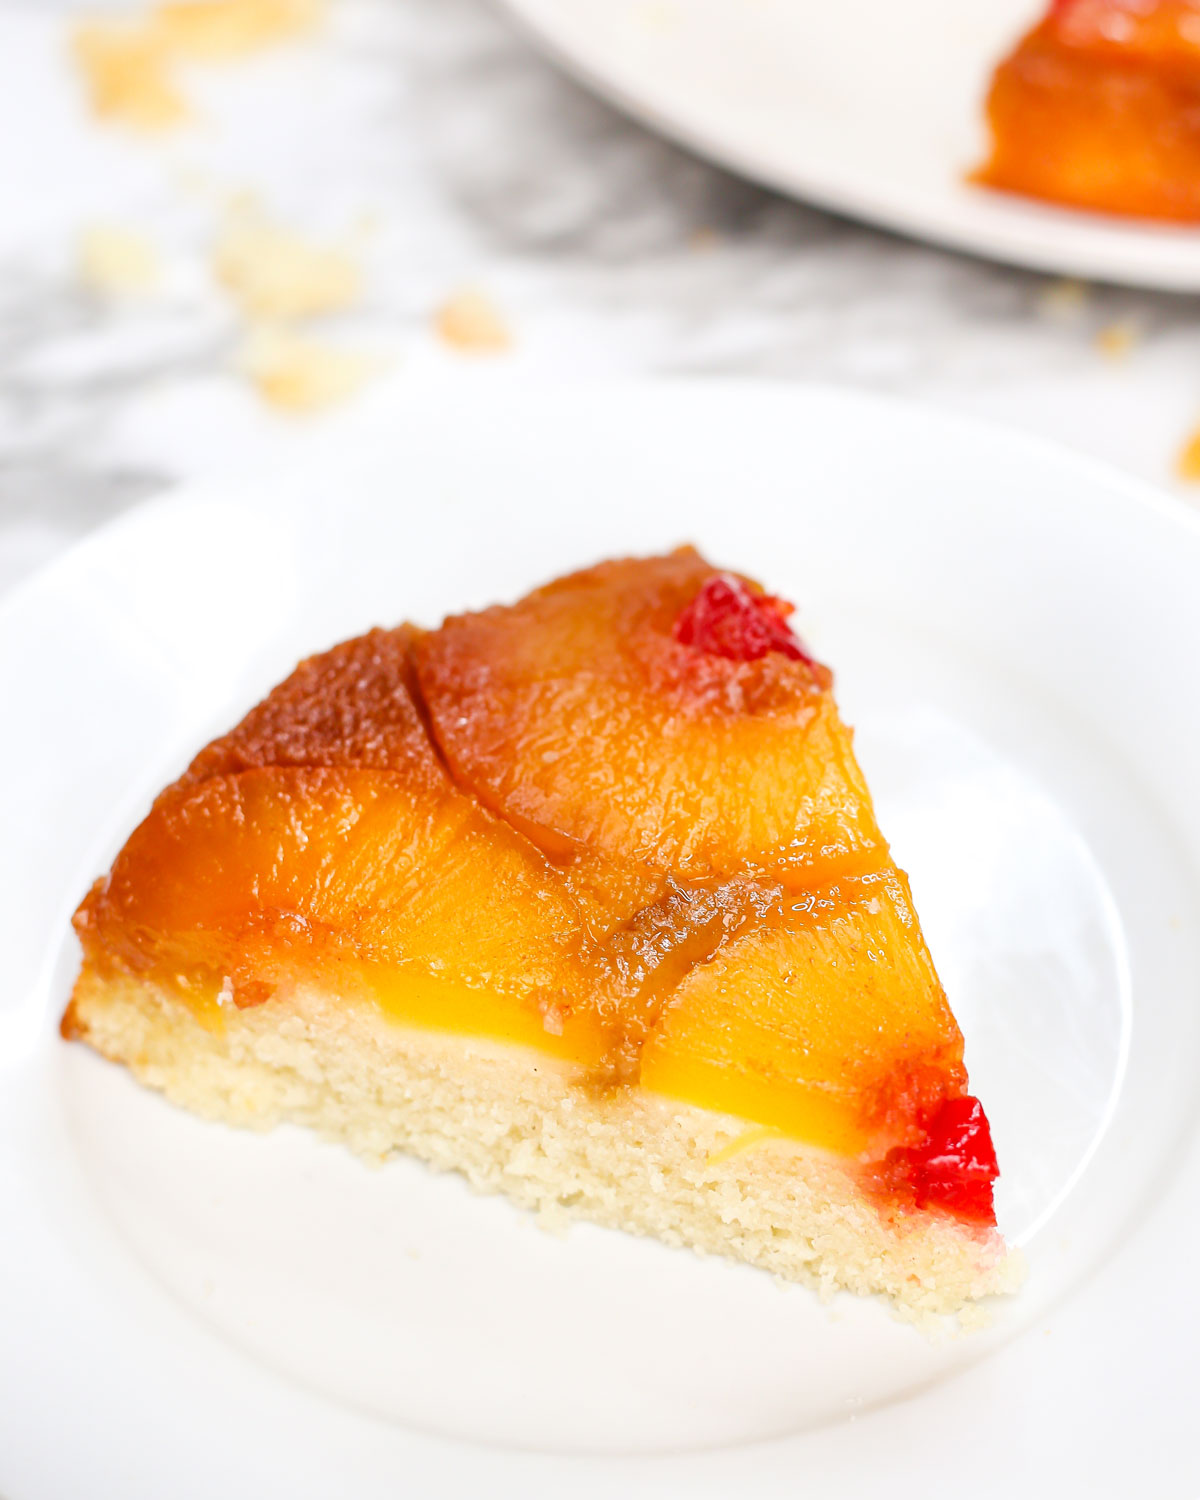 a slice of pineapple upside down cake on a plate